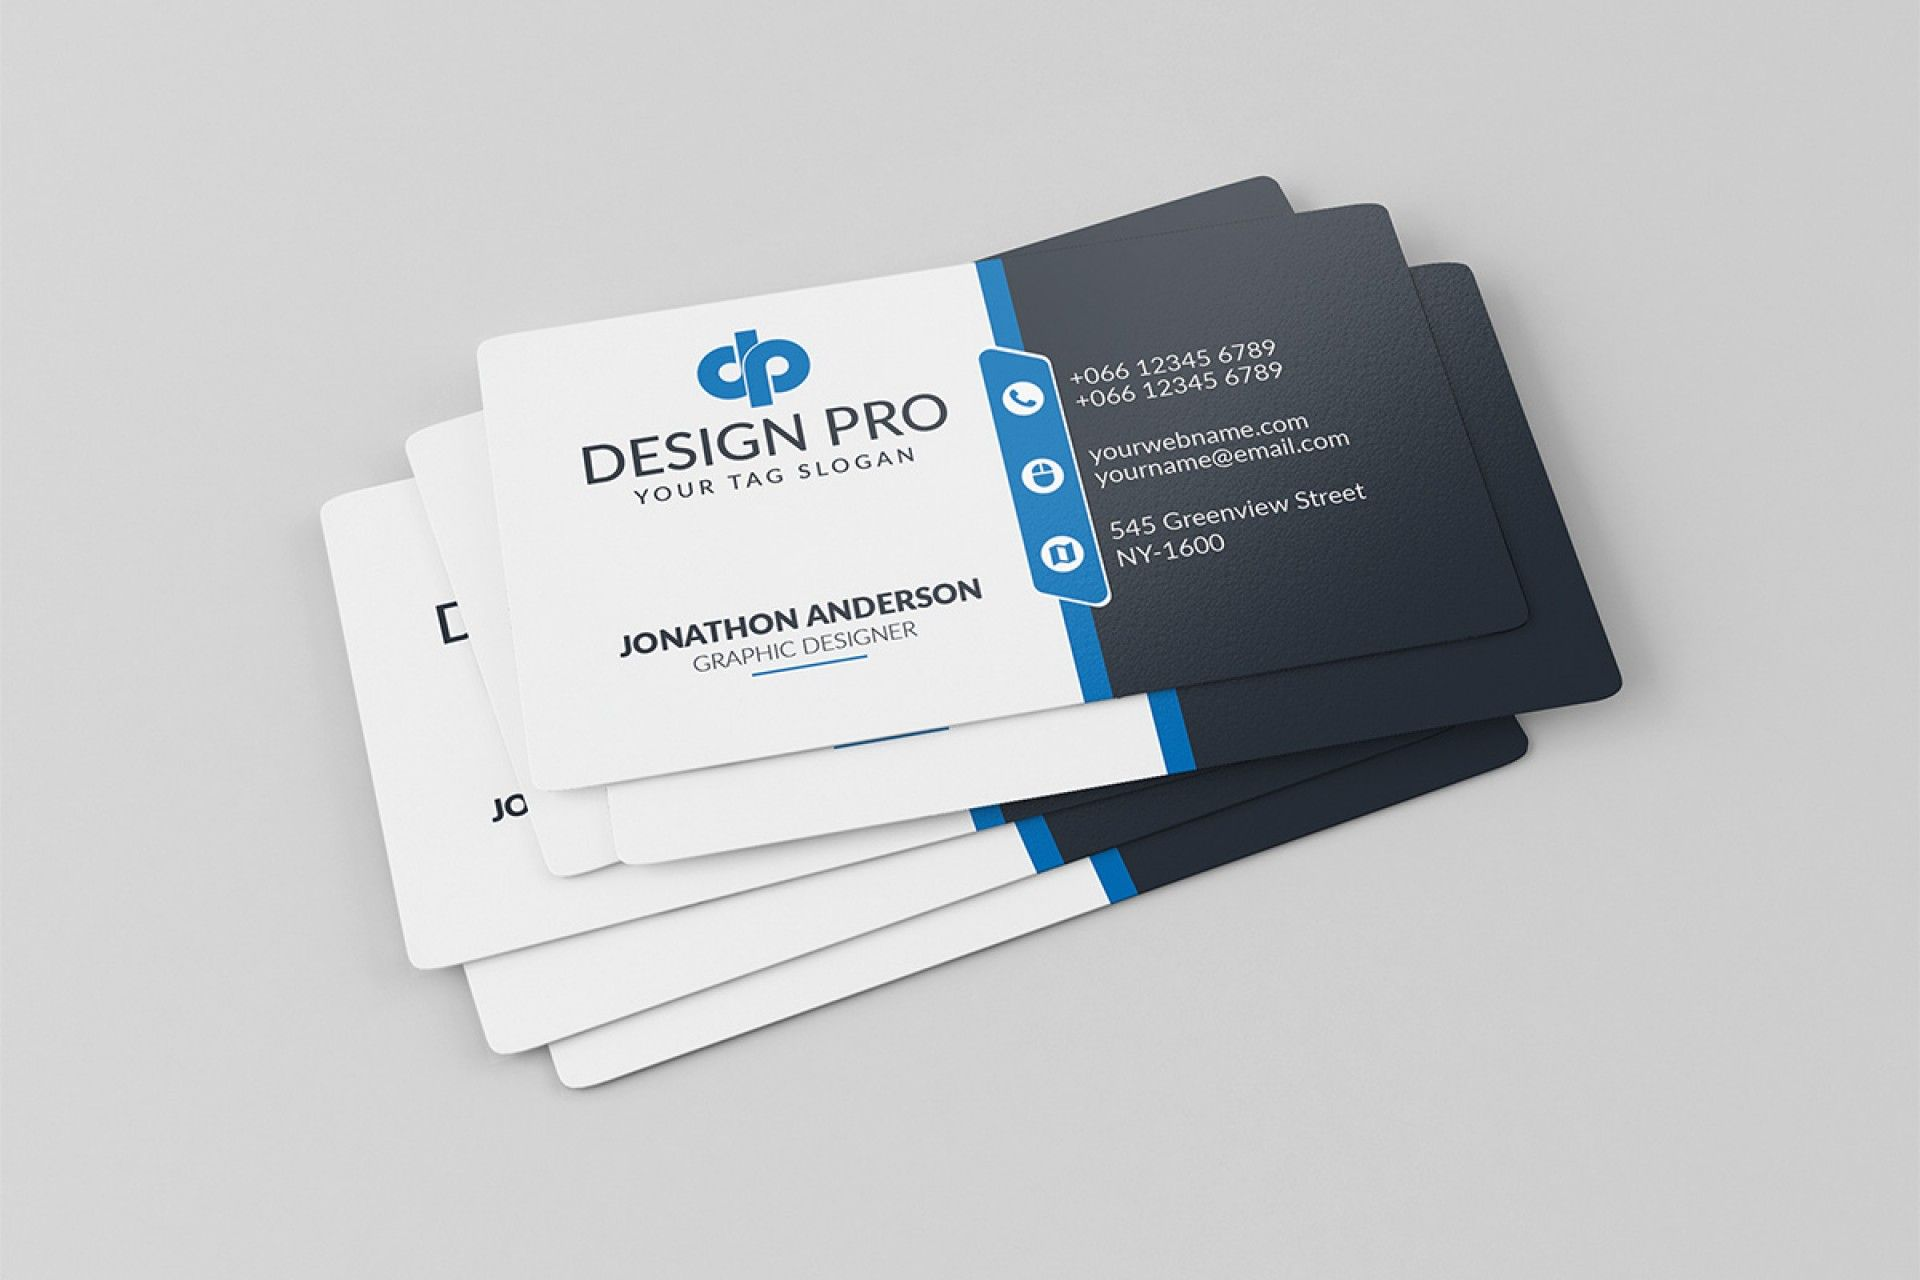 008 Template Ideas Templates For Visiting Cards Free With Regard To Microso Free Business Card Templates Business Card Template Photoshop Create Business Cards